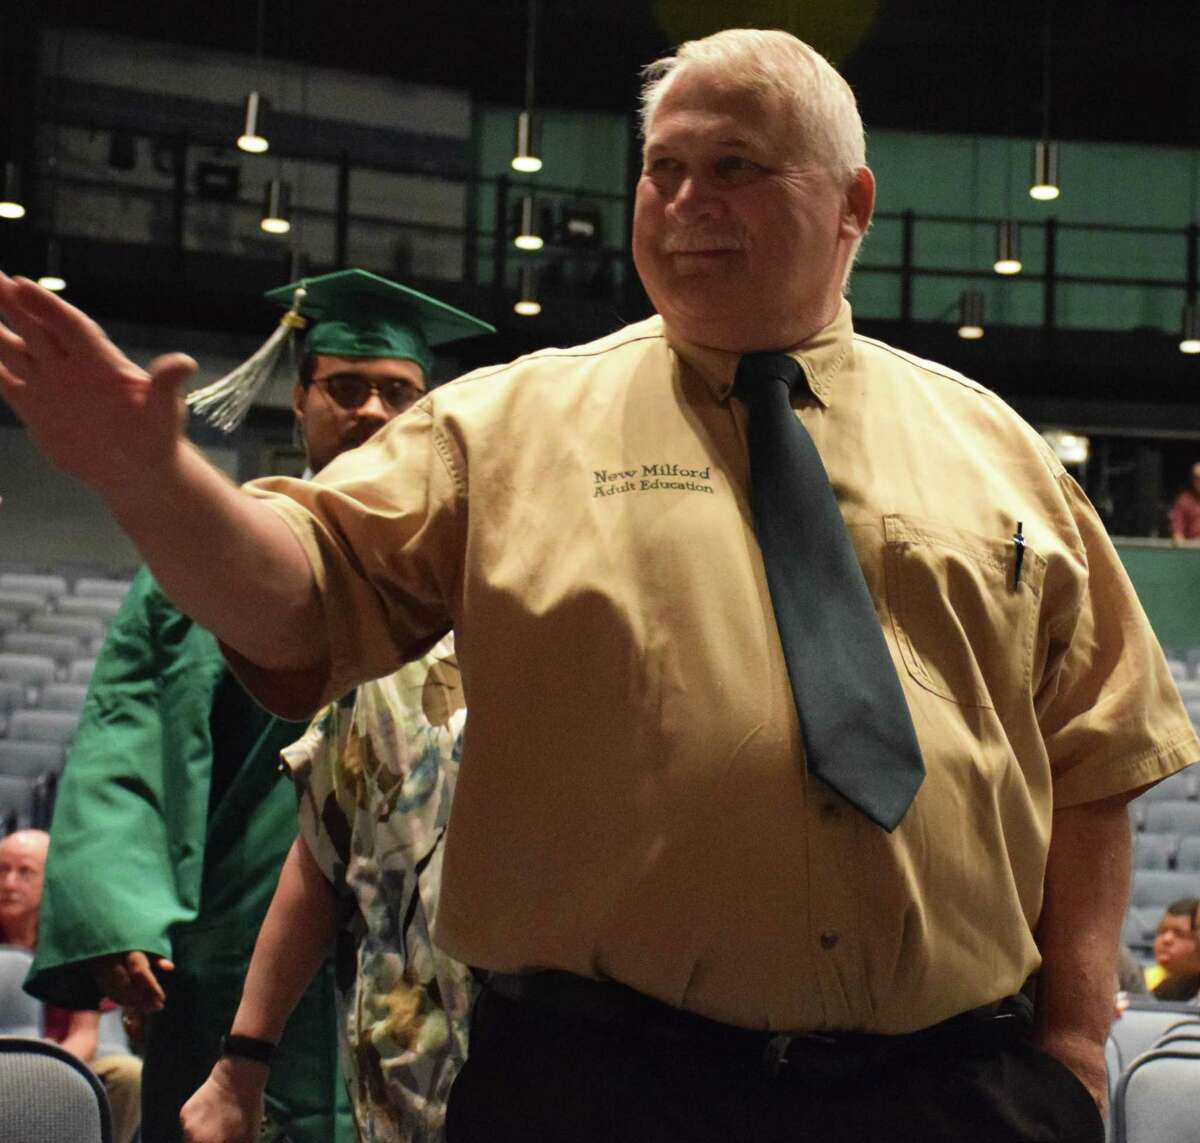 Spectrum/New Milford Adult Education held commencement exercises June 12, 2019 for 27 graduates. The ceremony was held at New Milford High School and included the presentation of student speeches, and the presentation of awards and diplomas. Above, Guidance Counselor Joe Neff, who marked his 20th year in that role this year, waves to family members at the ceremony.